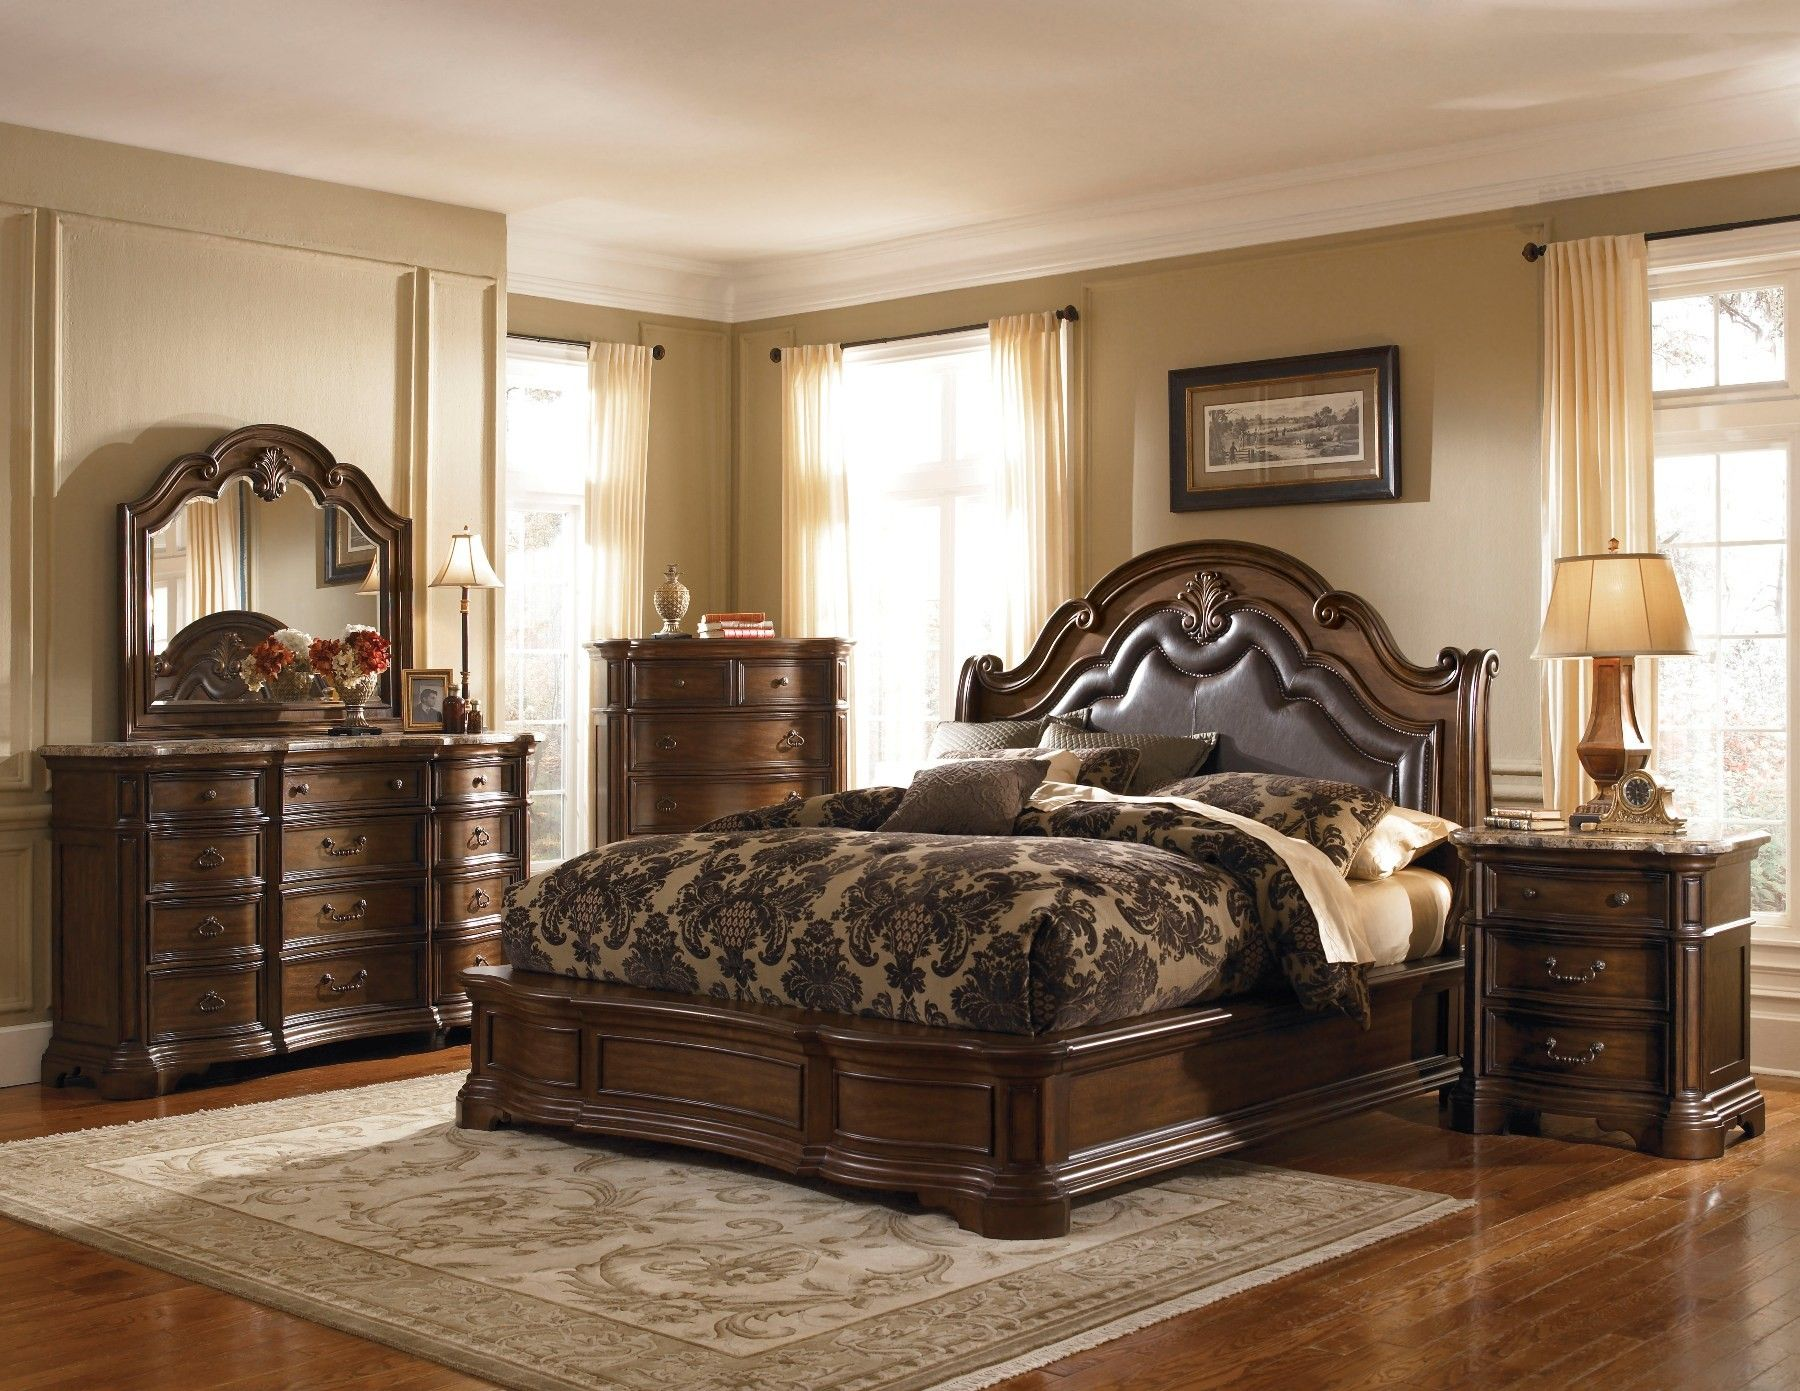 Best Pulaski Bedroom Furniture Wholesale Closeouts Courtland 640 x 480